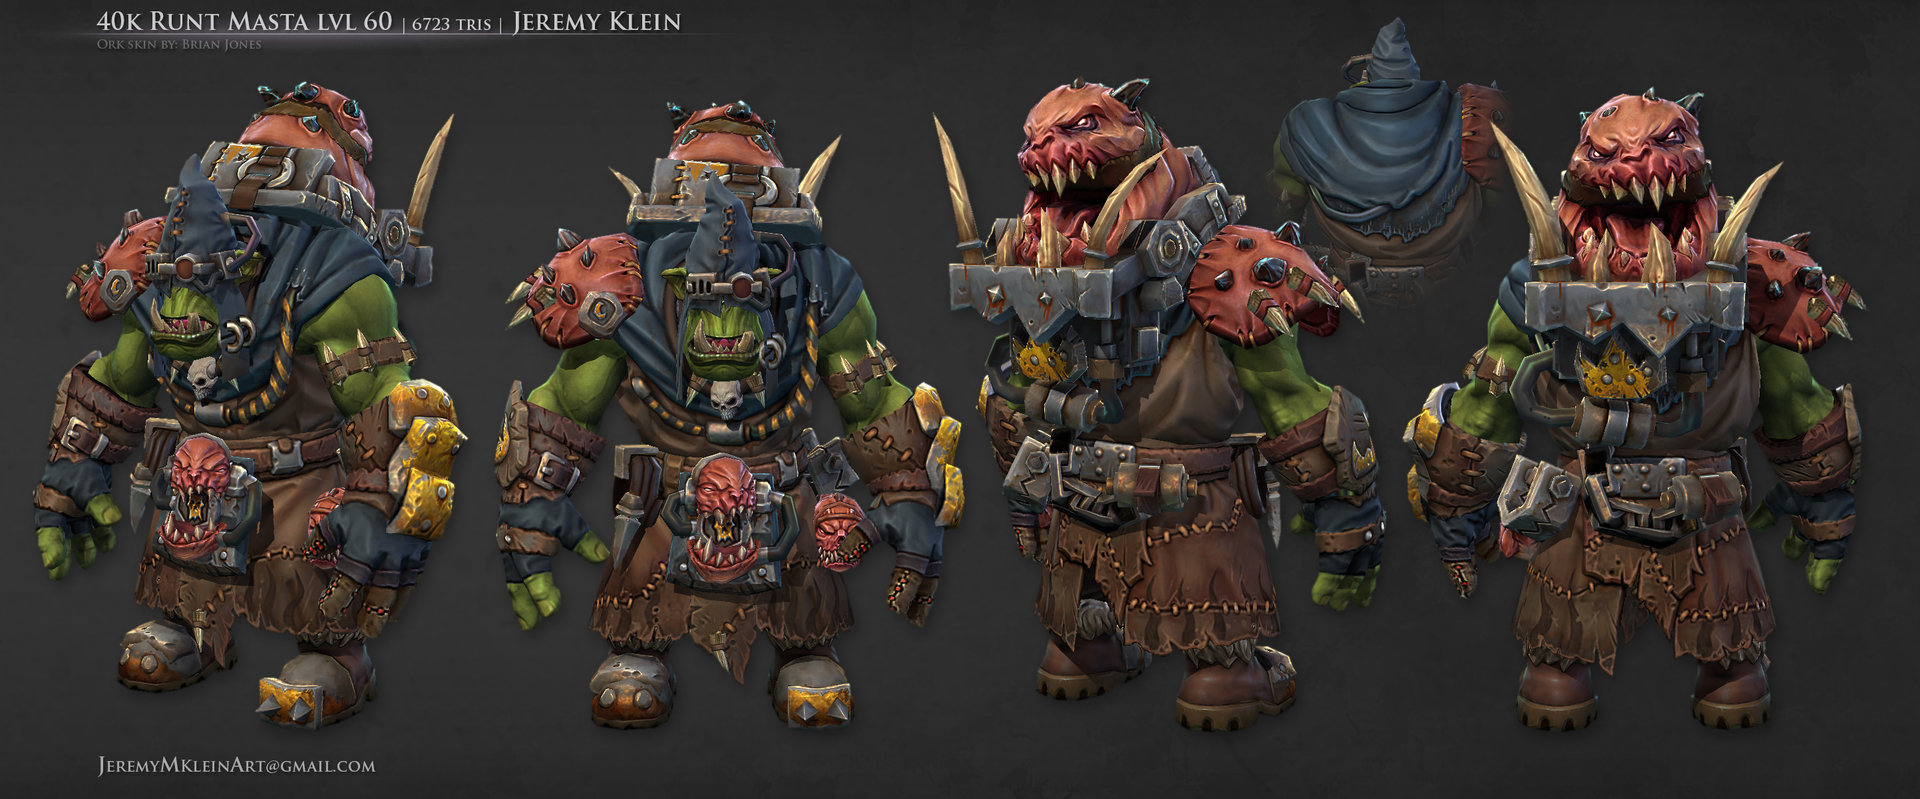 Ork Assets From Dark Millenium | Warhammer 40,000: Eternal ...